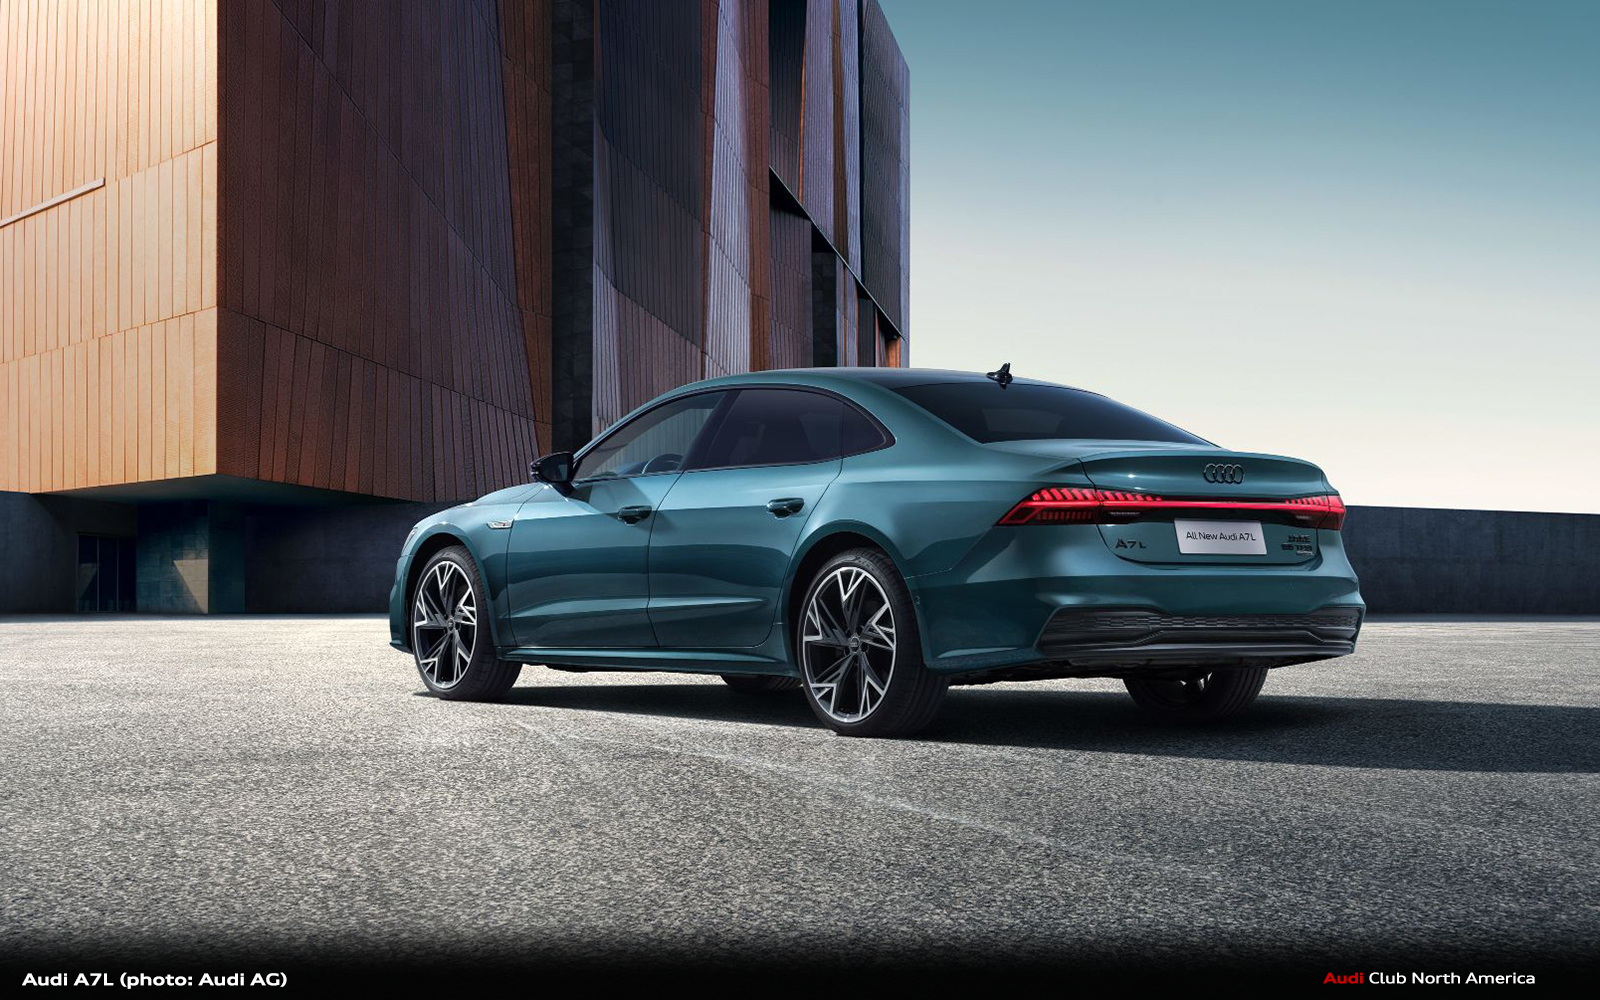 Four World Premieres and PPE Technology – Audi at Auto Shanghai 2021